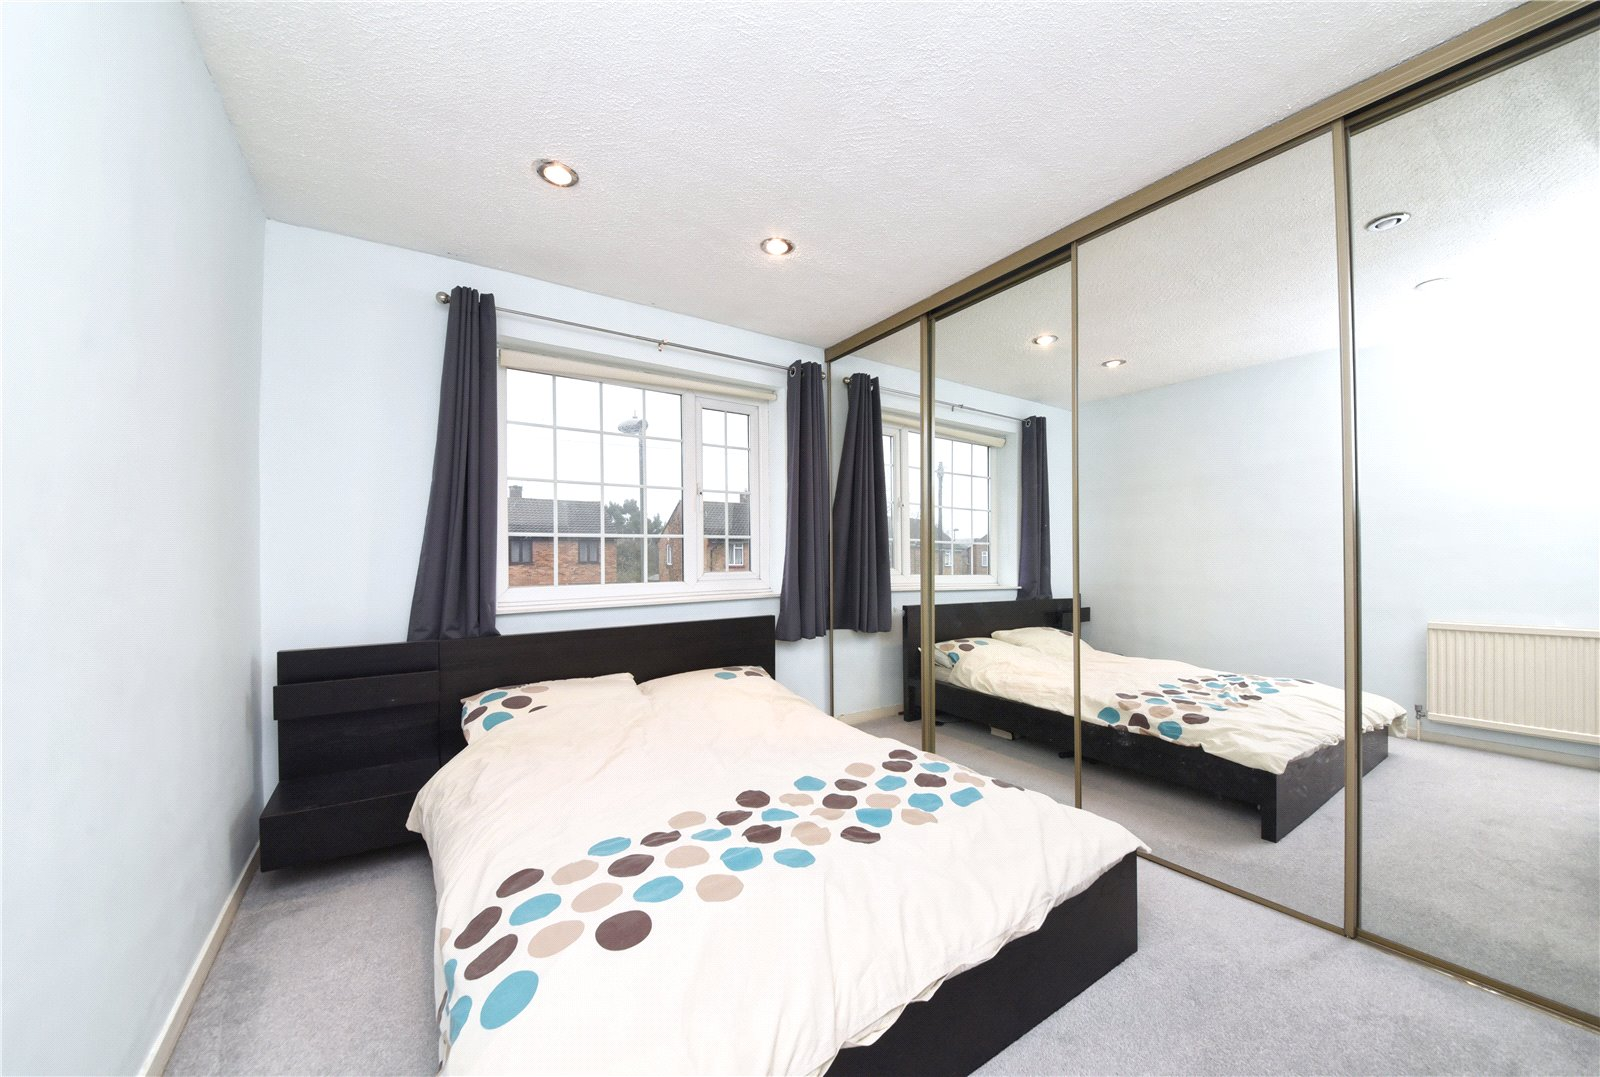 3 bed house for sale in Edgware, HA8 8XT 6